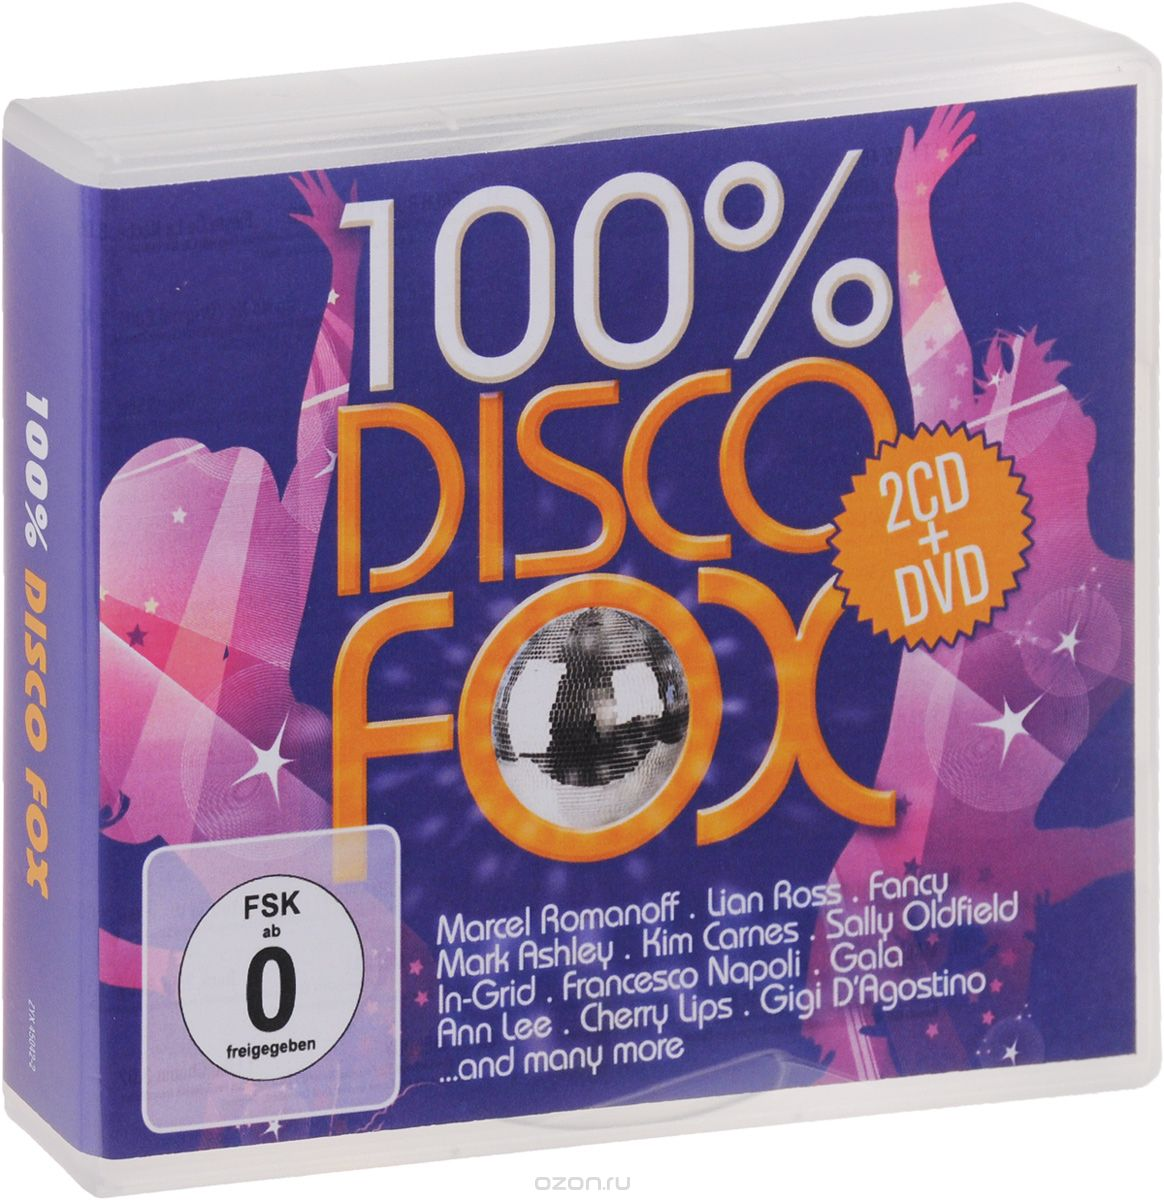 100% Disco Fox (2 CD + DVD)